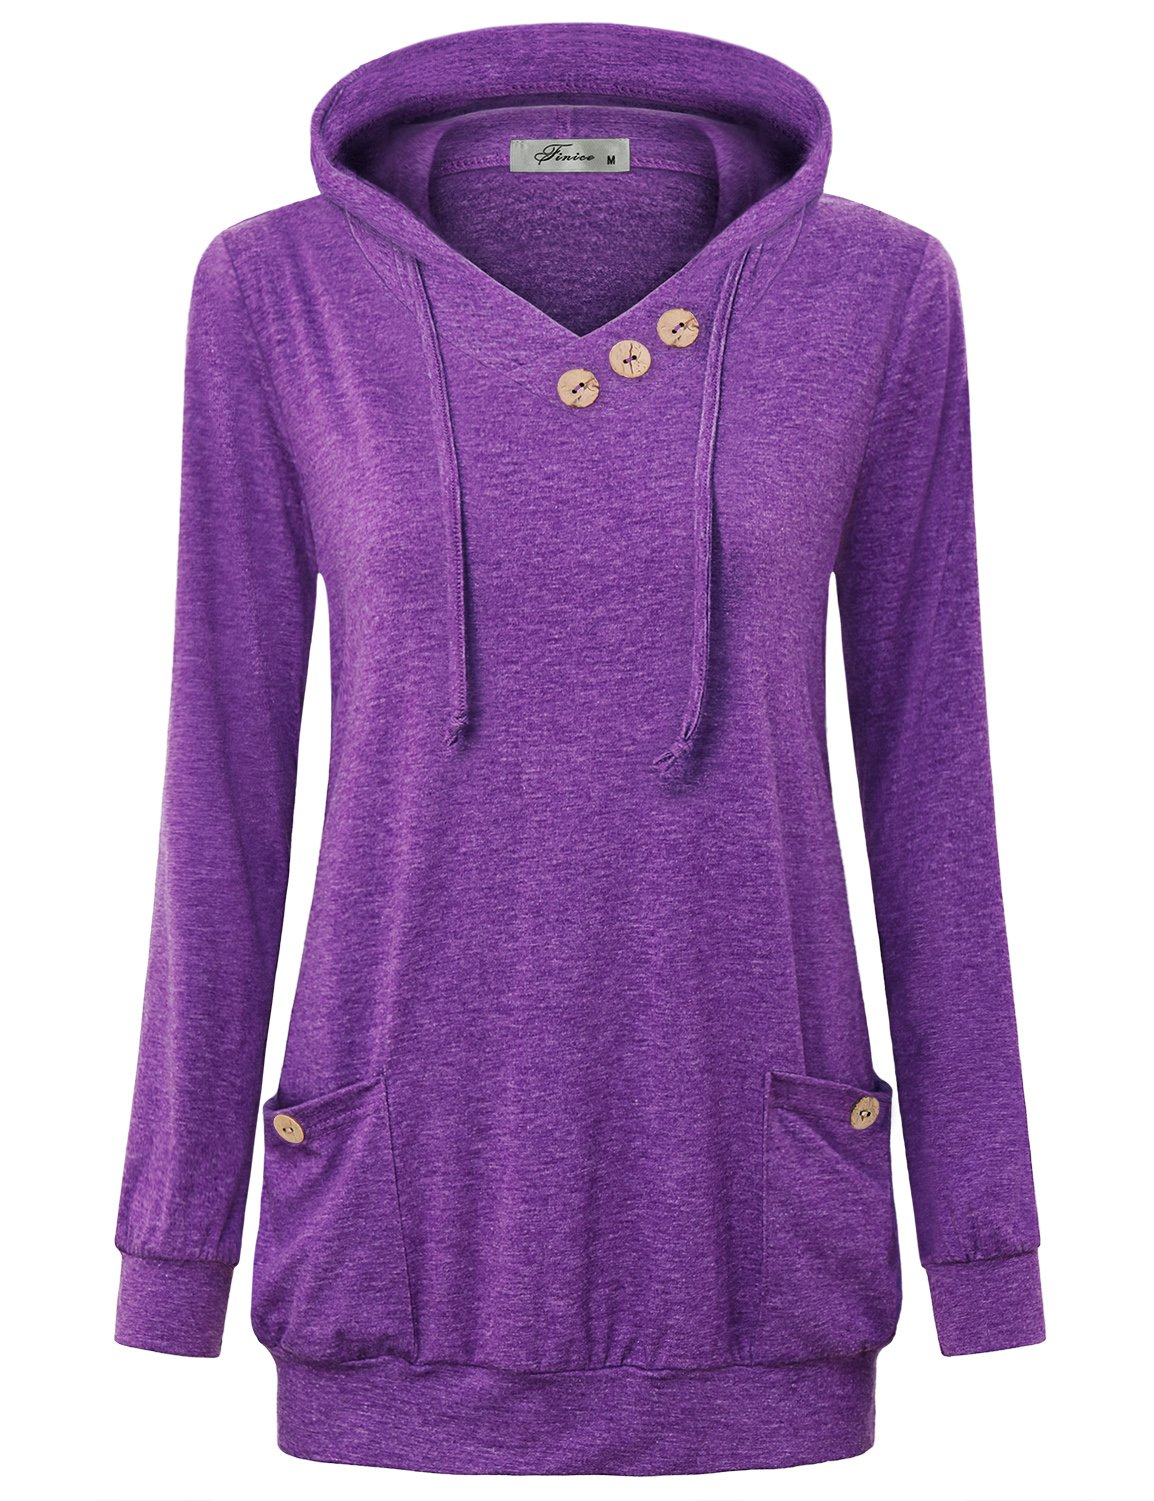 Finice Sweatshirts For Women, Juniors Tops Cute V Neck Long Sleeve Tunic Shirt Simple Basic Designer Drawstring Pullover Hoodie With Pockets Christmas Gift 2017 Purple XL